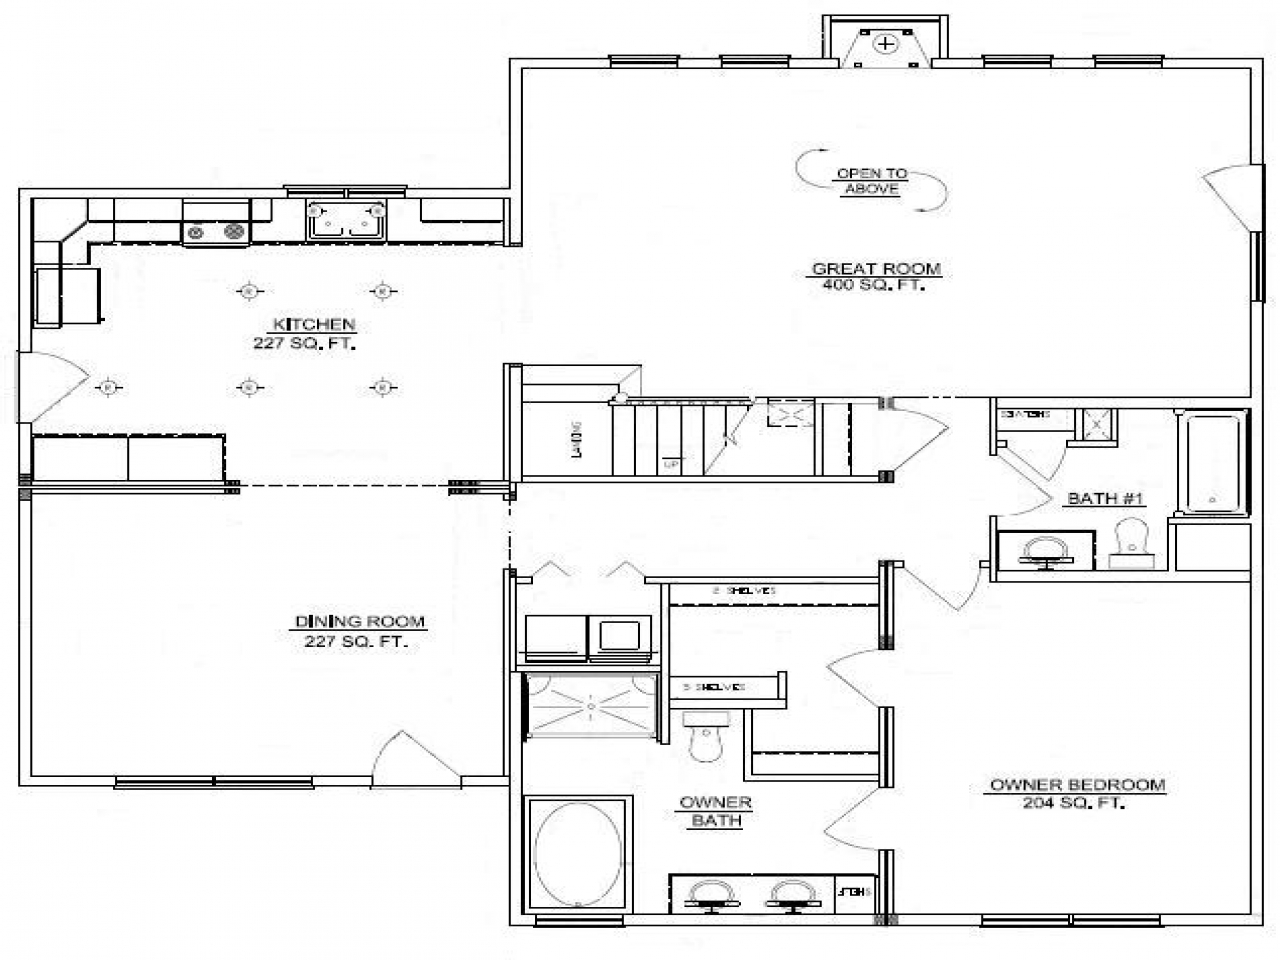 3 bedroom log cabin floor plans 3 bedroom double wide for 2 bedroom log cabin floor plans